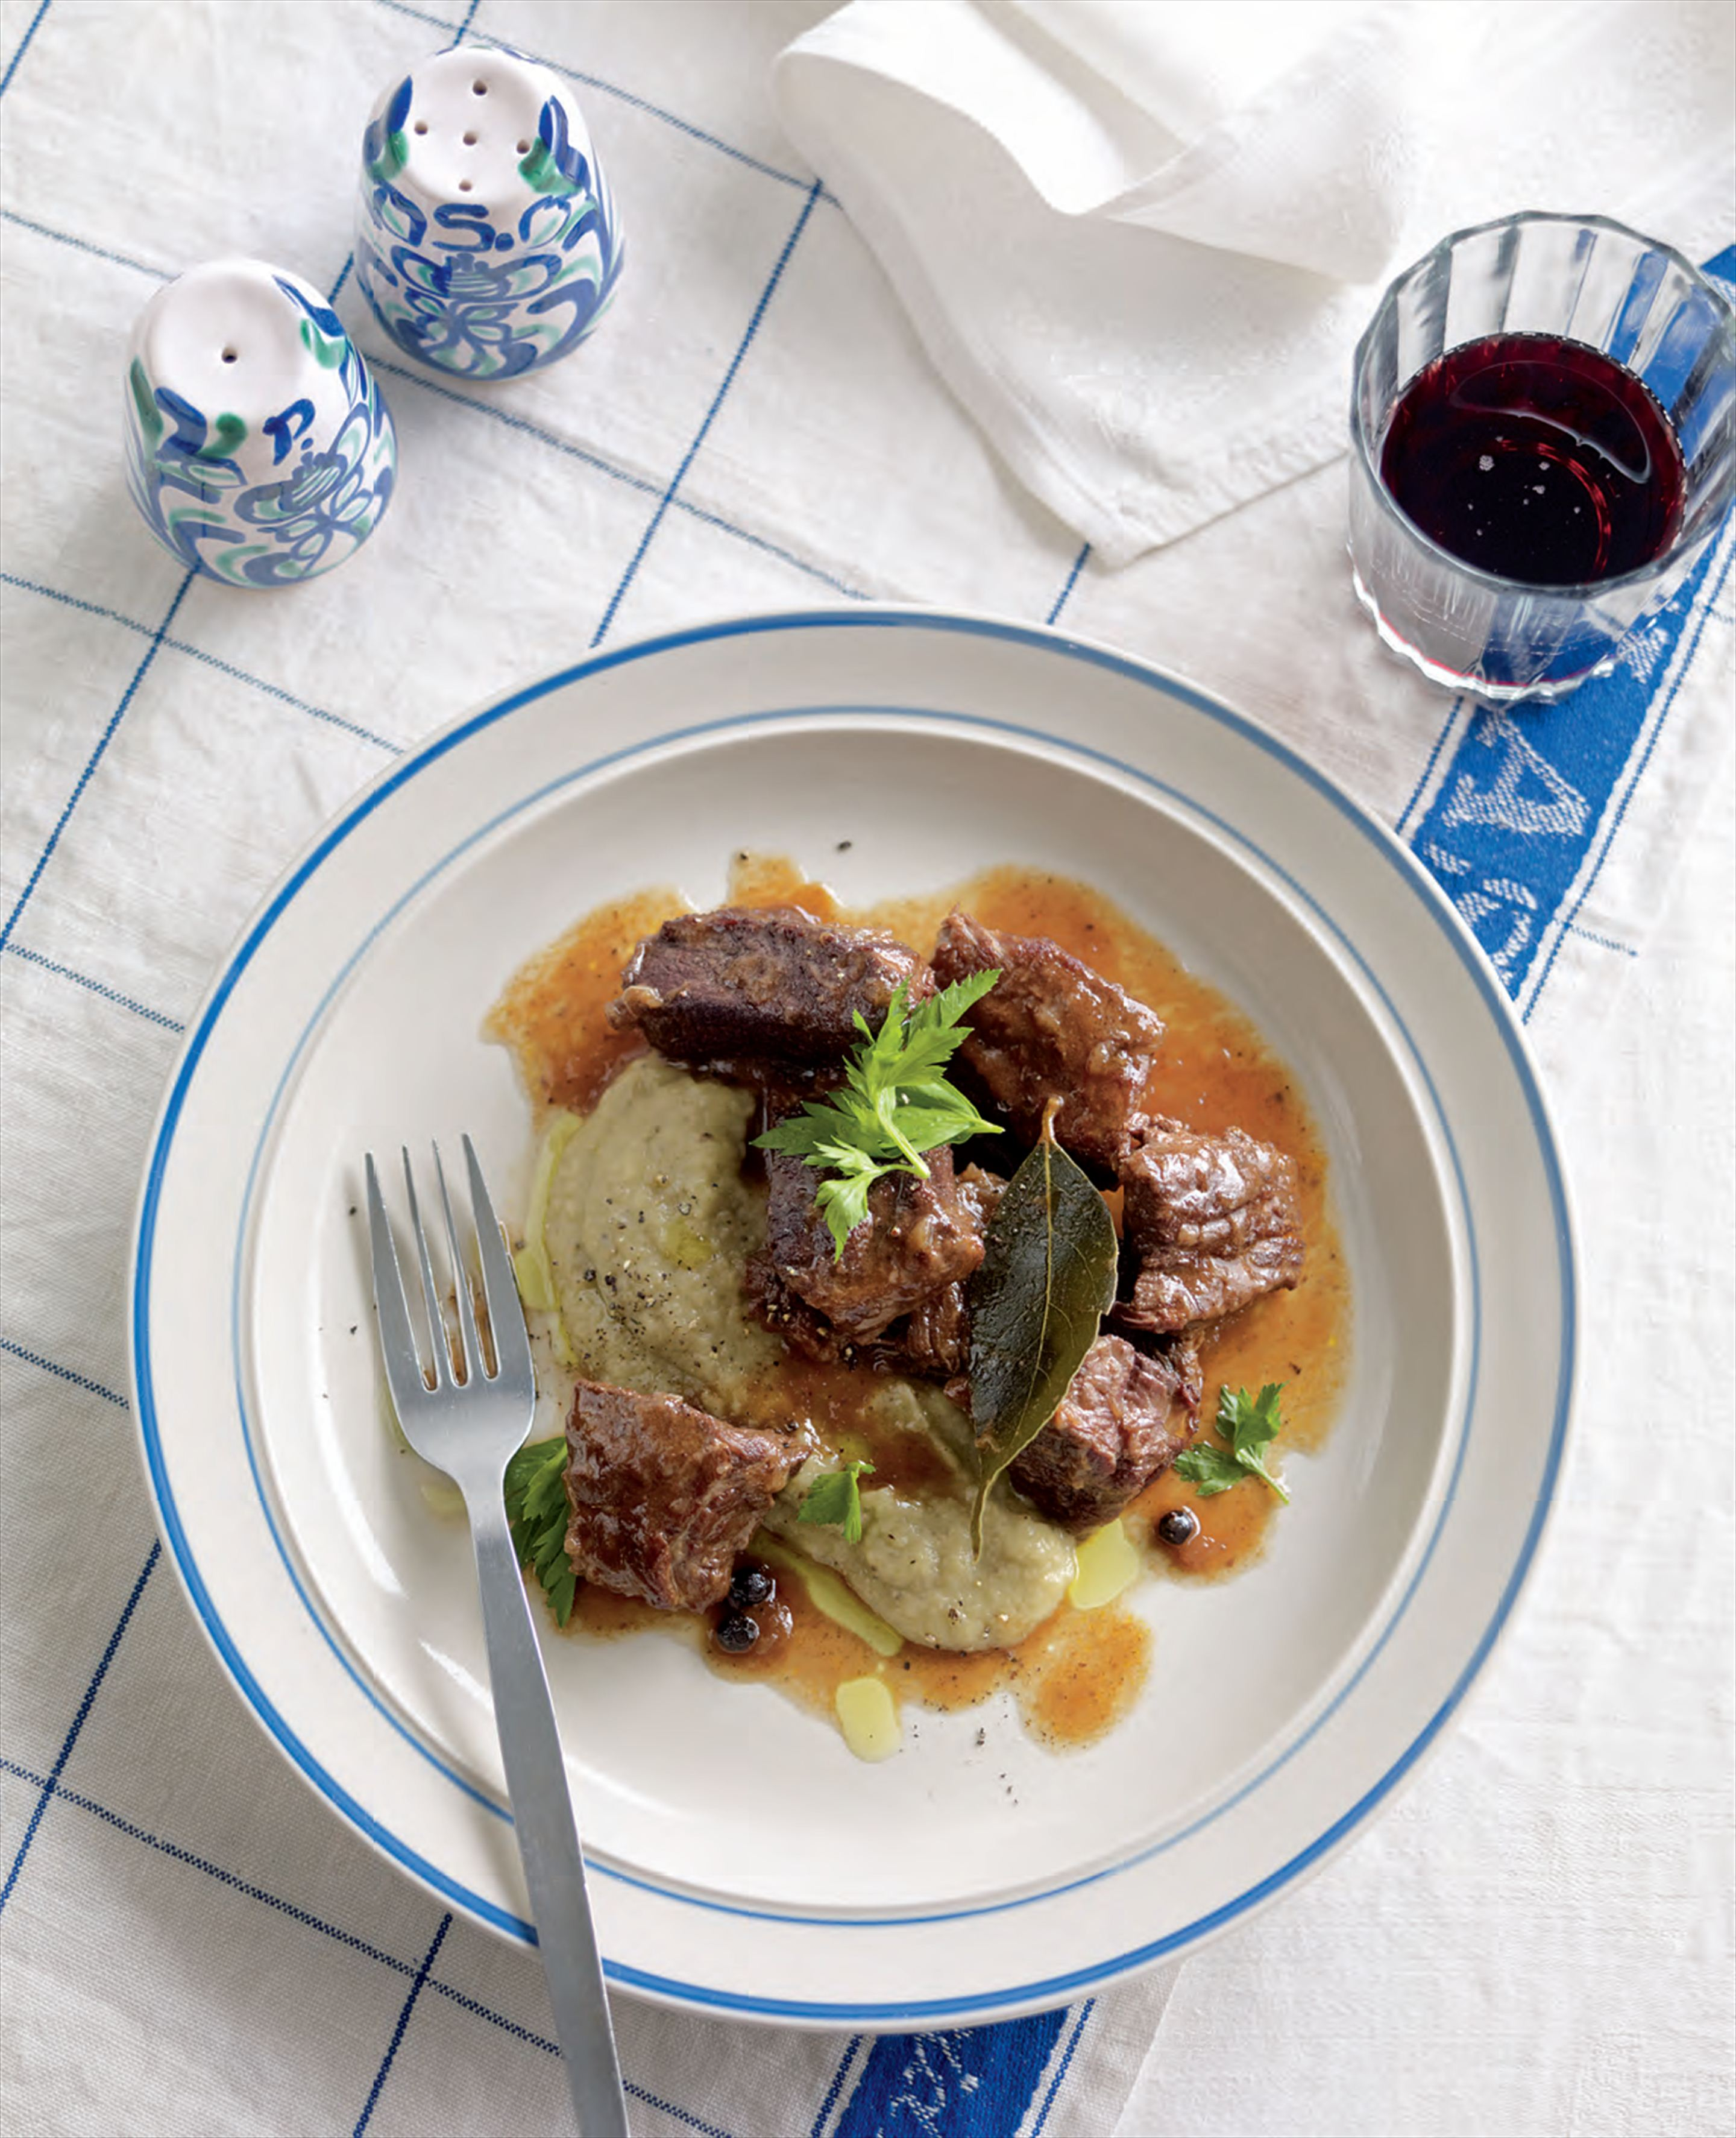 Braised veal with eggplant purée